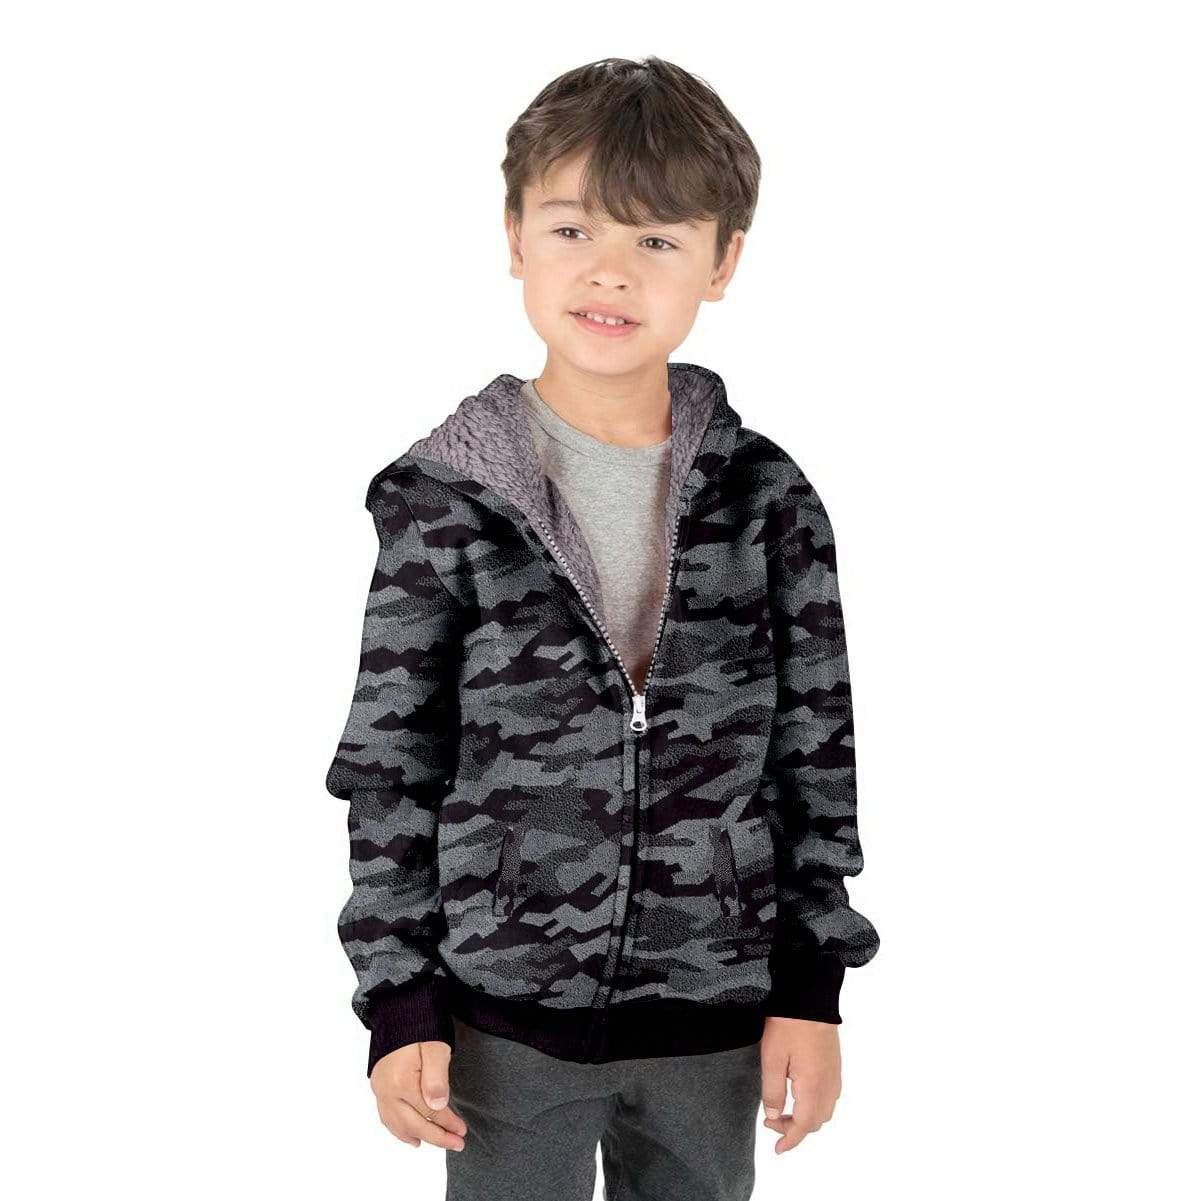 Stone Harbor Boy's Zipper Hoodie Black / 2-3 Years Boy's Stone Harbor Camo DARK EFFECT Fur Lined Zipper HOODIE